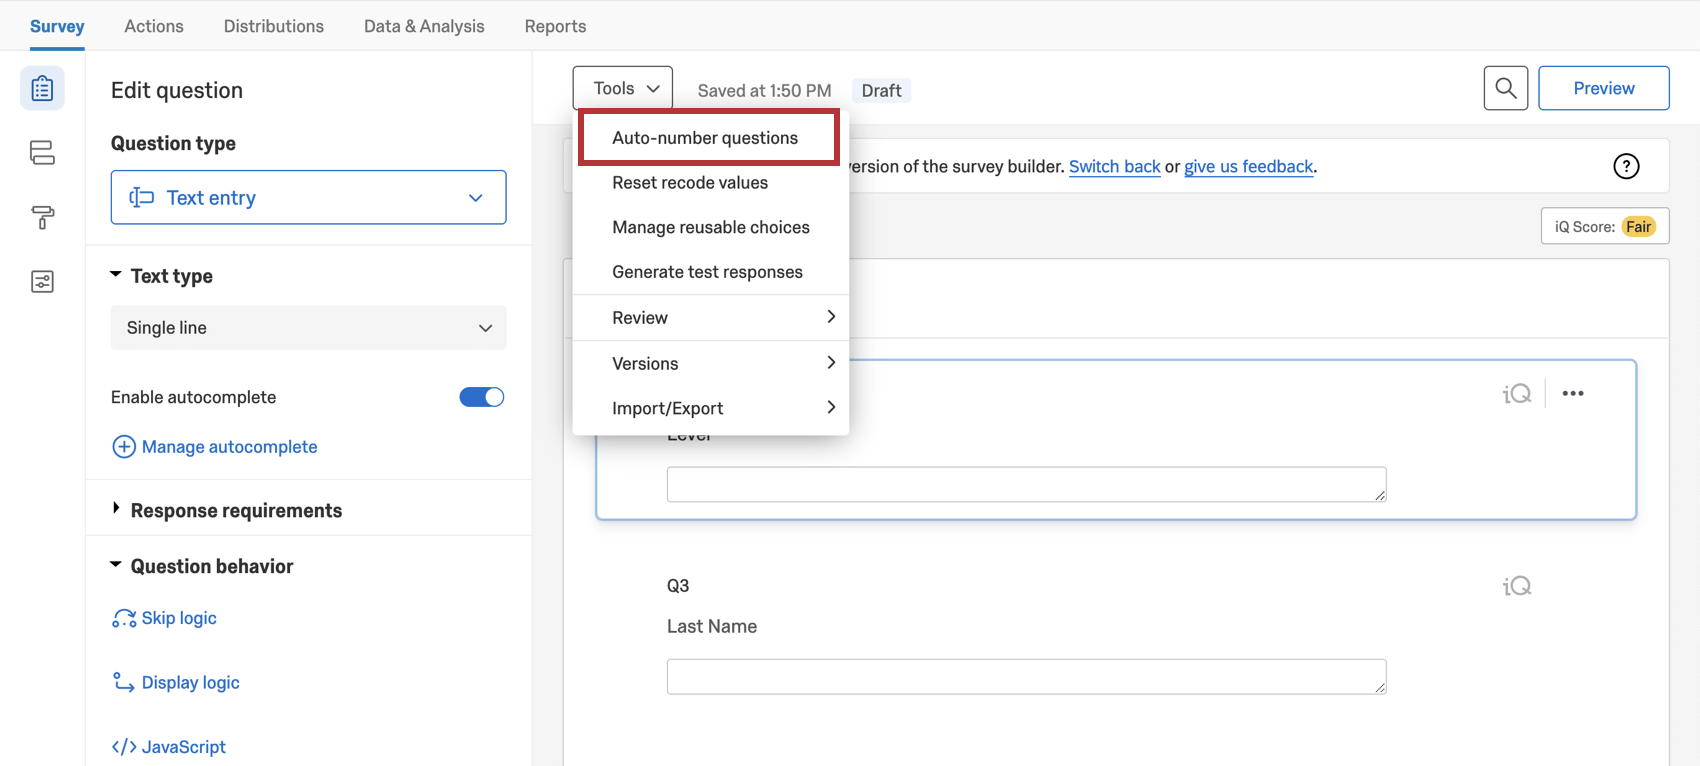 Auto number questions is the first option when you open the tools dropdown along the top of the survey builder